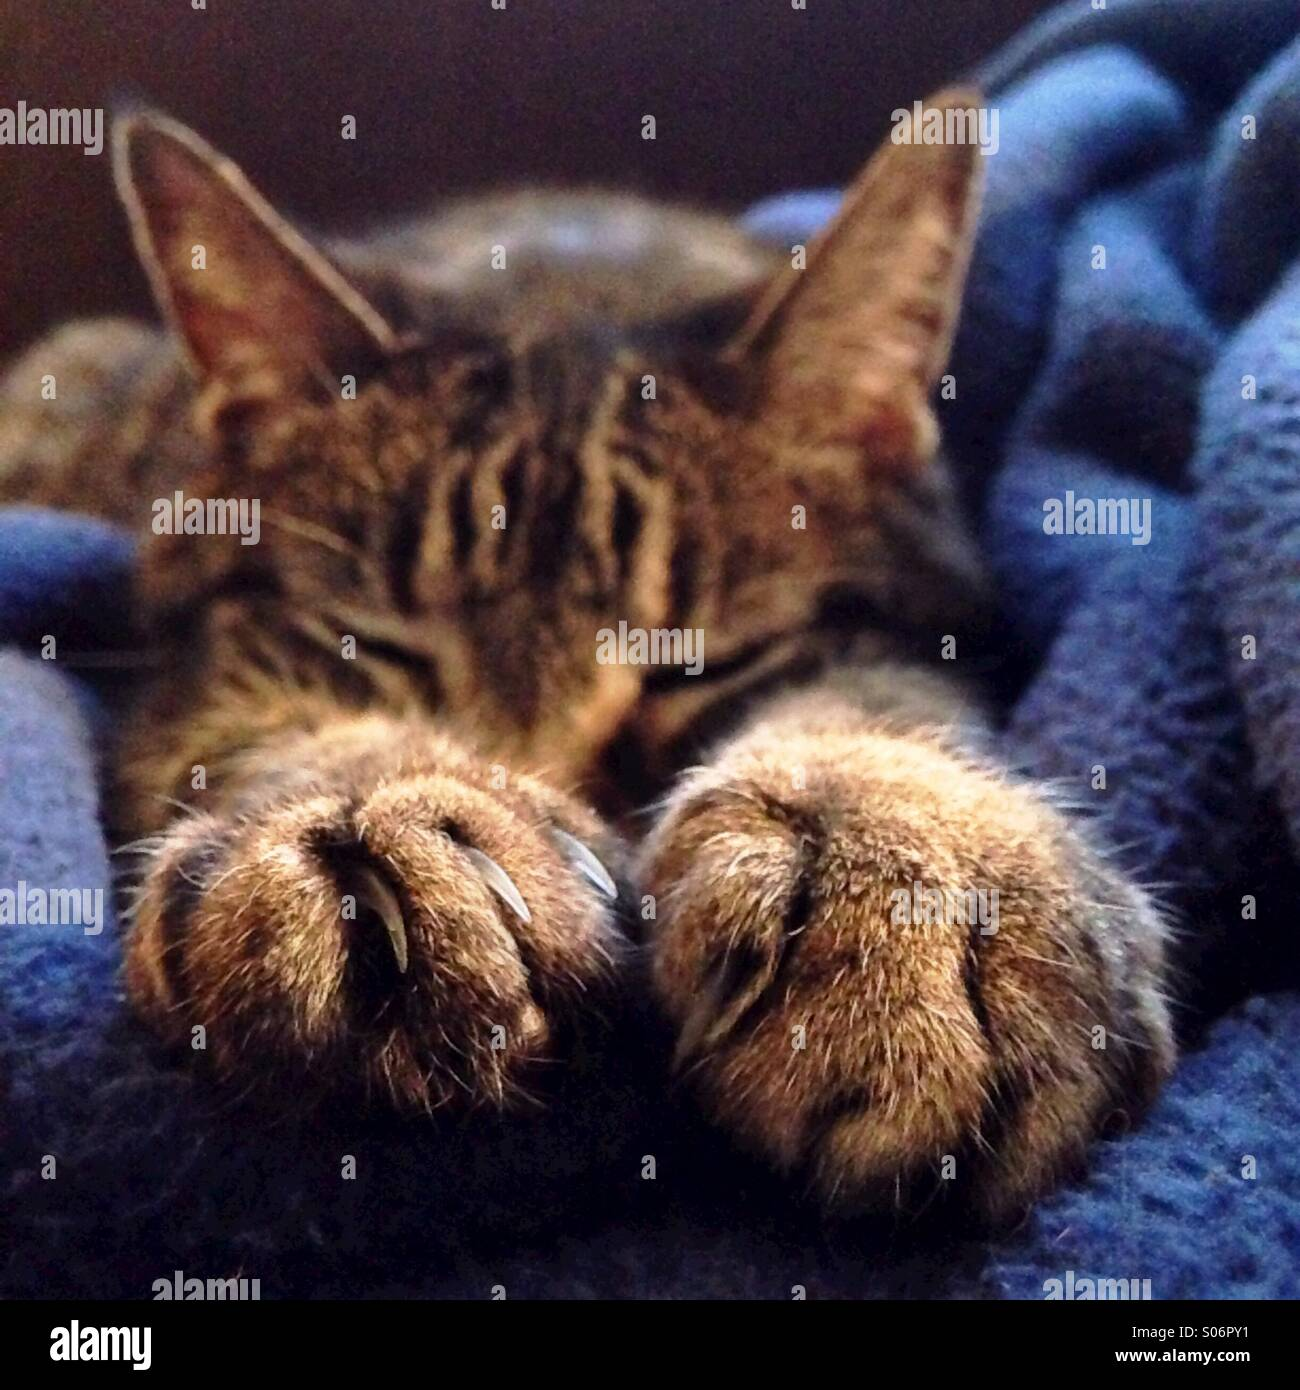 Tabby cat, focus on paws - Stock Image